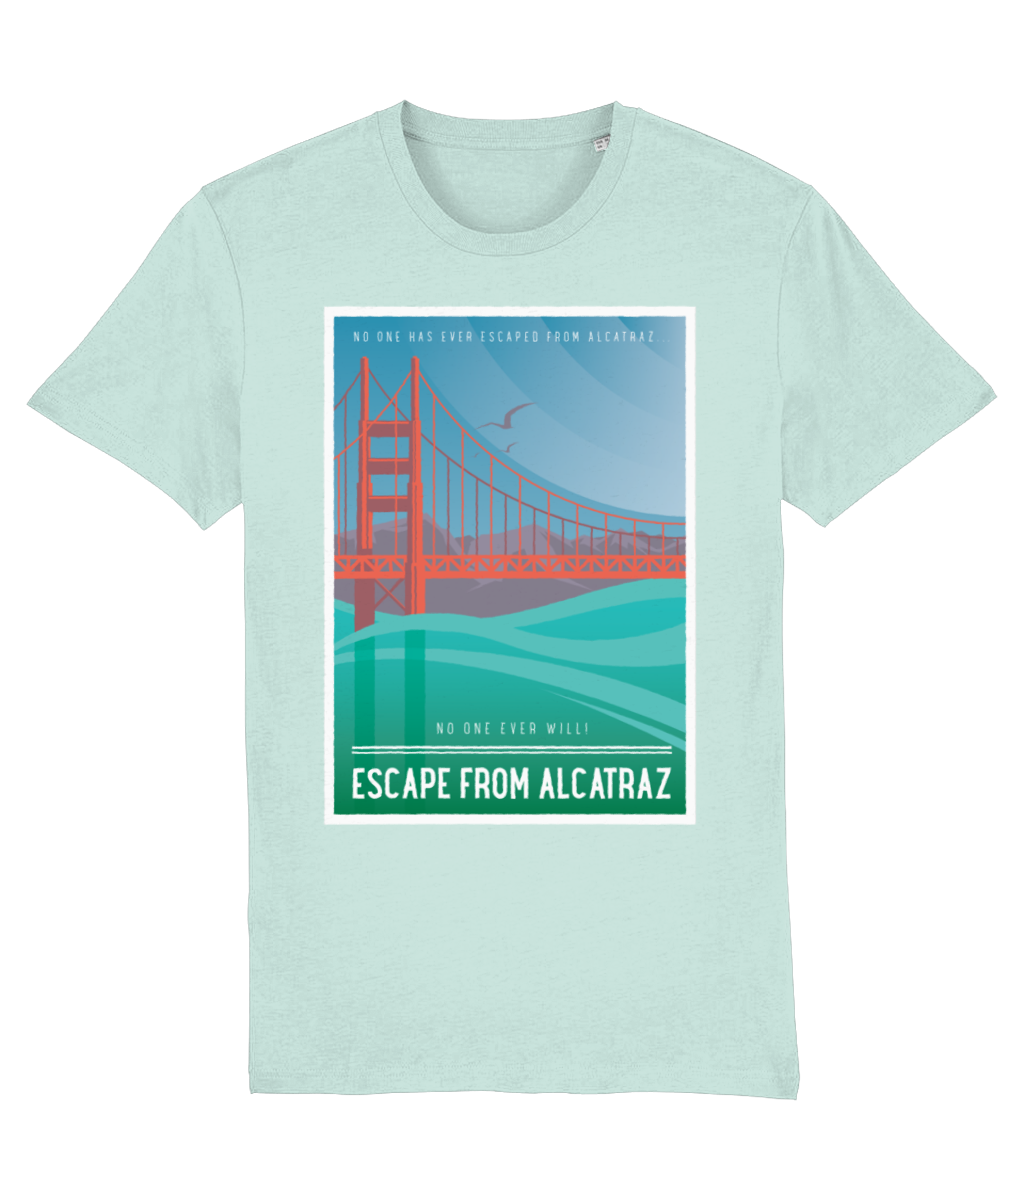 Escape from Alcatraz Vintage Organic T-shirt